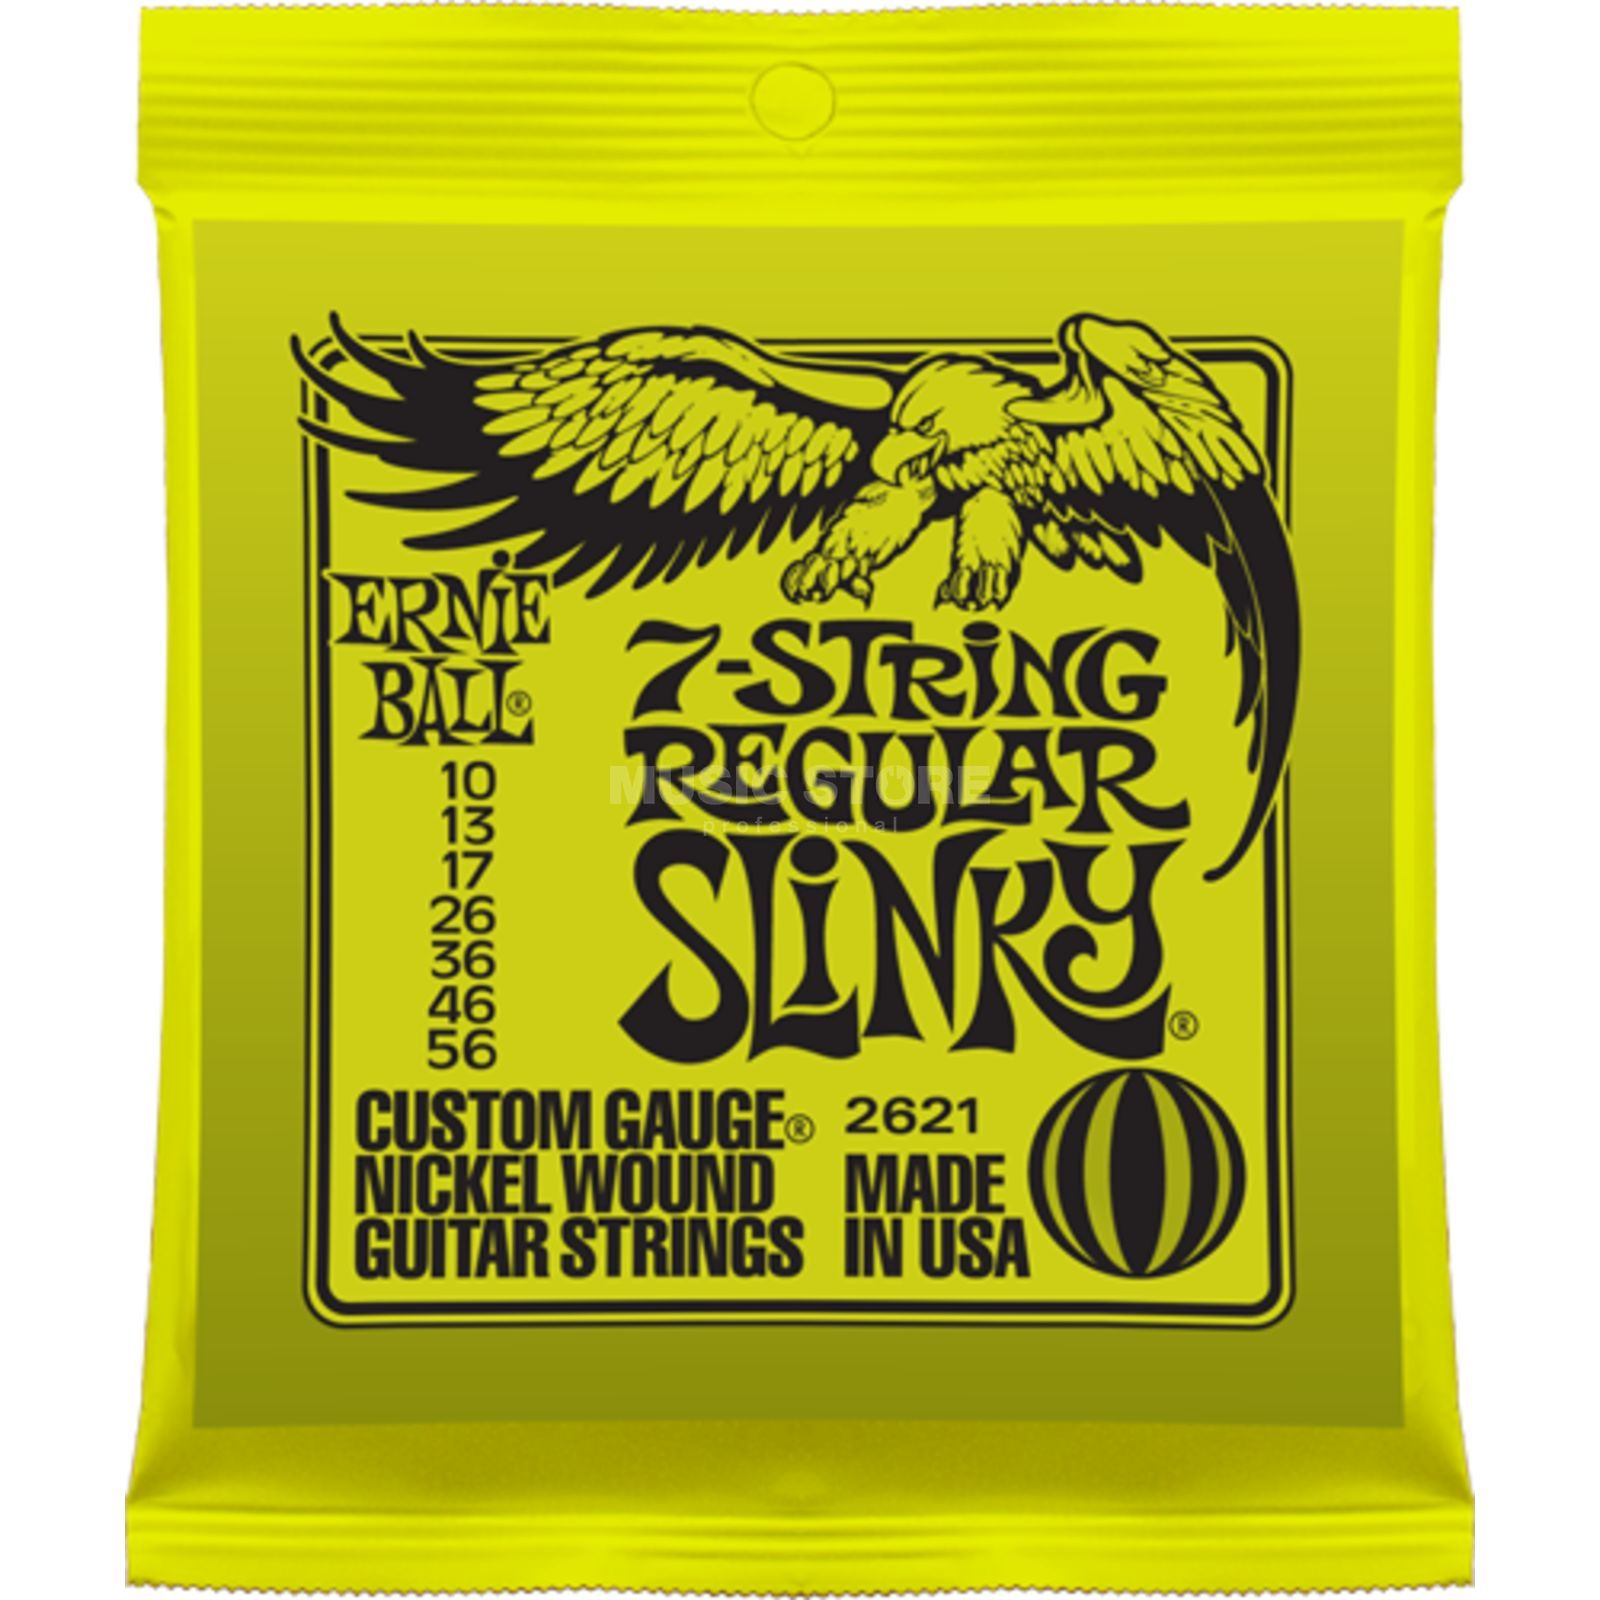 Ernie Ball EB2621 10-56 7-string Regular Slinky Nickel Plated Produktbild